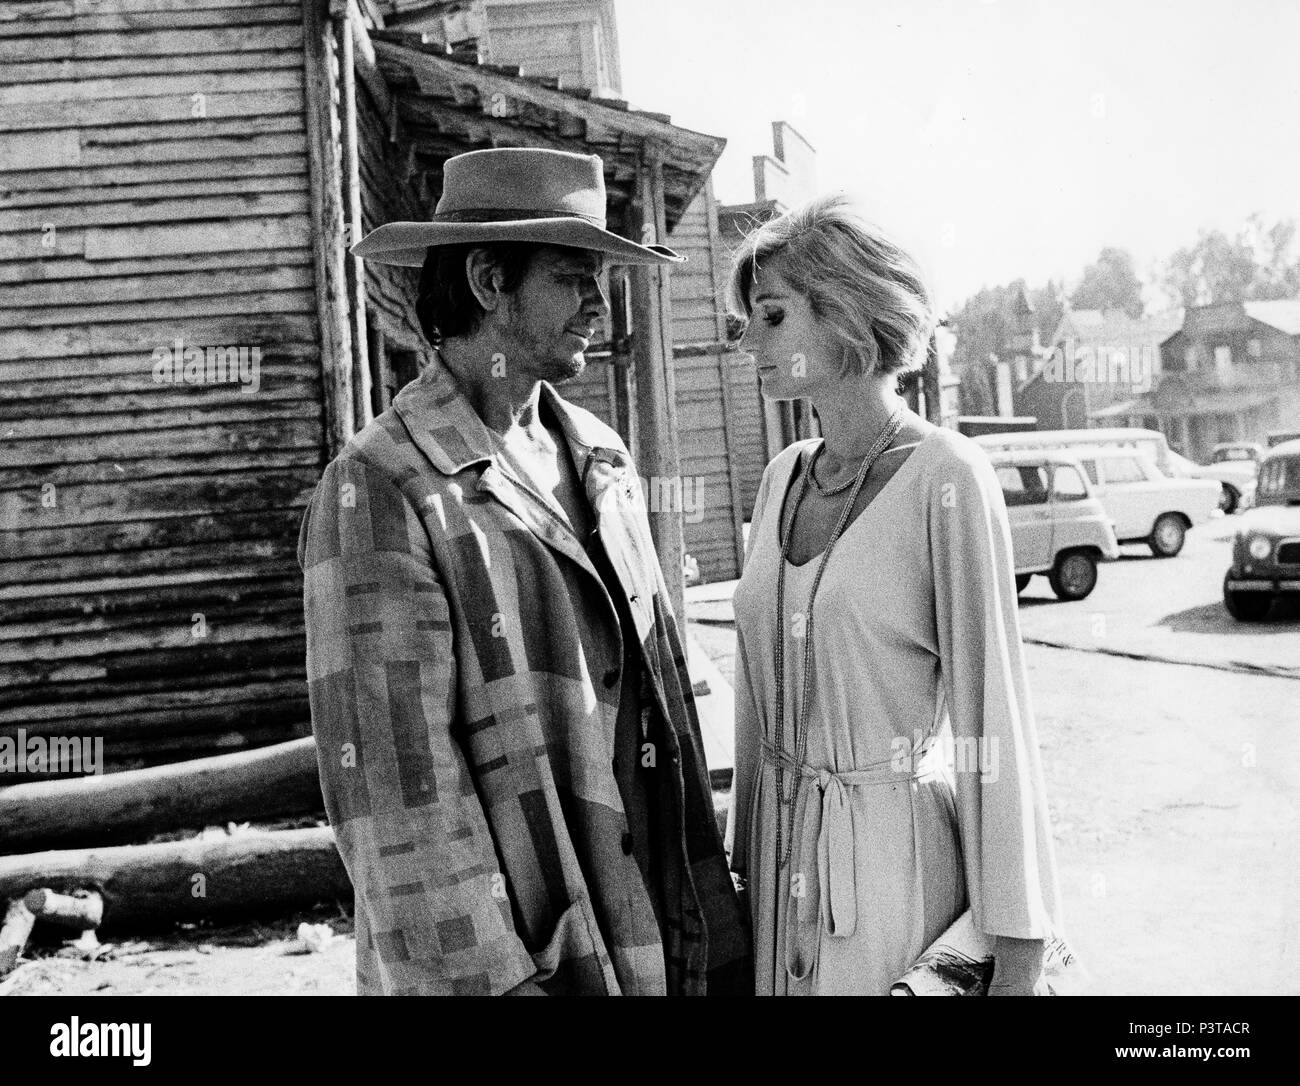 charles bronson, jill ireland, once upon a time in the west, 1968 - Stock Image